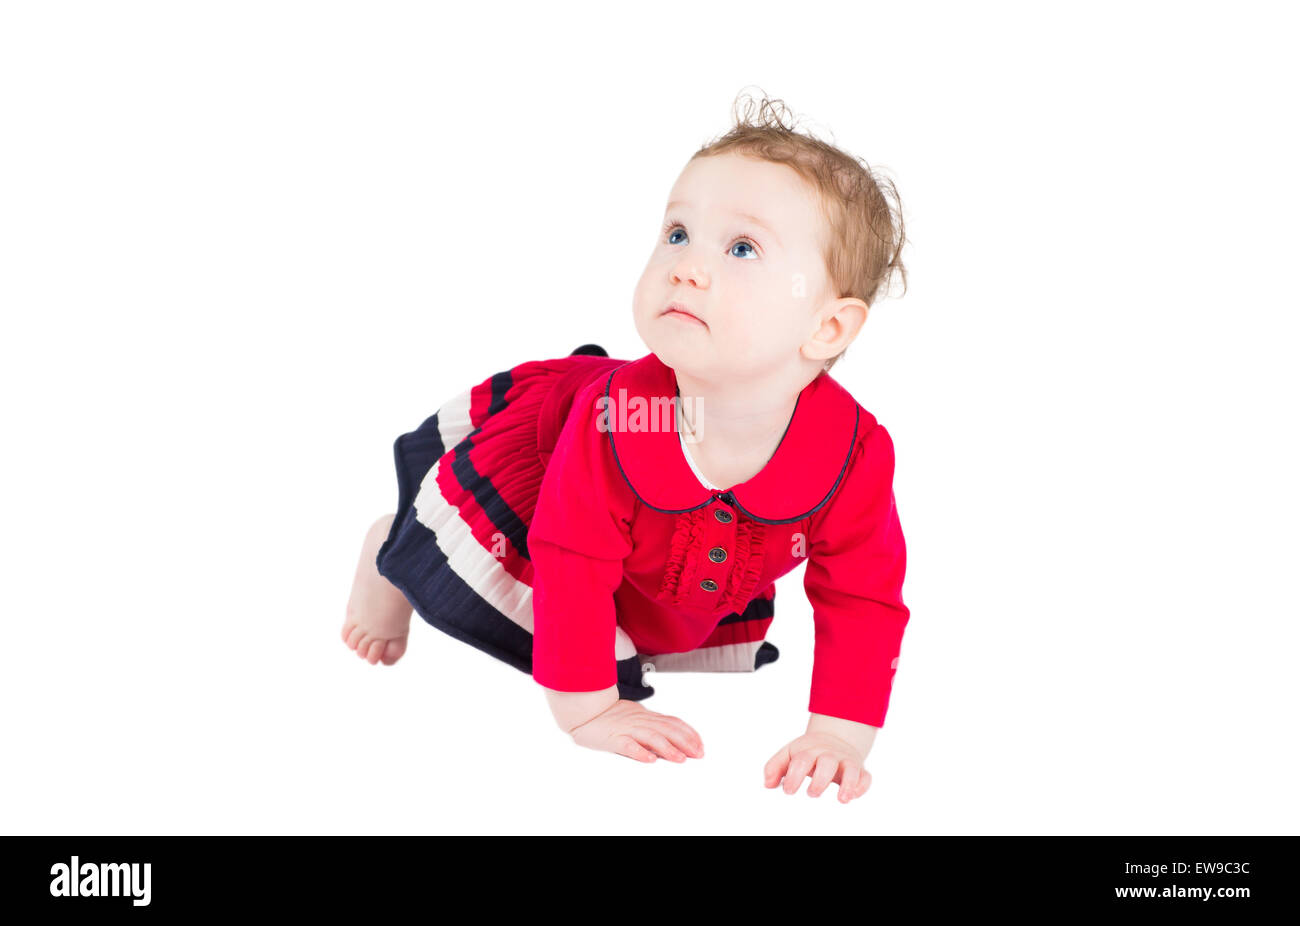 Funny baby girl in a red dress learning to crawl, isolated on white - Stock Image